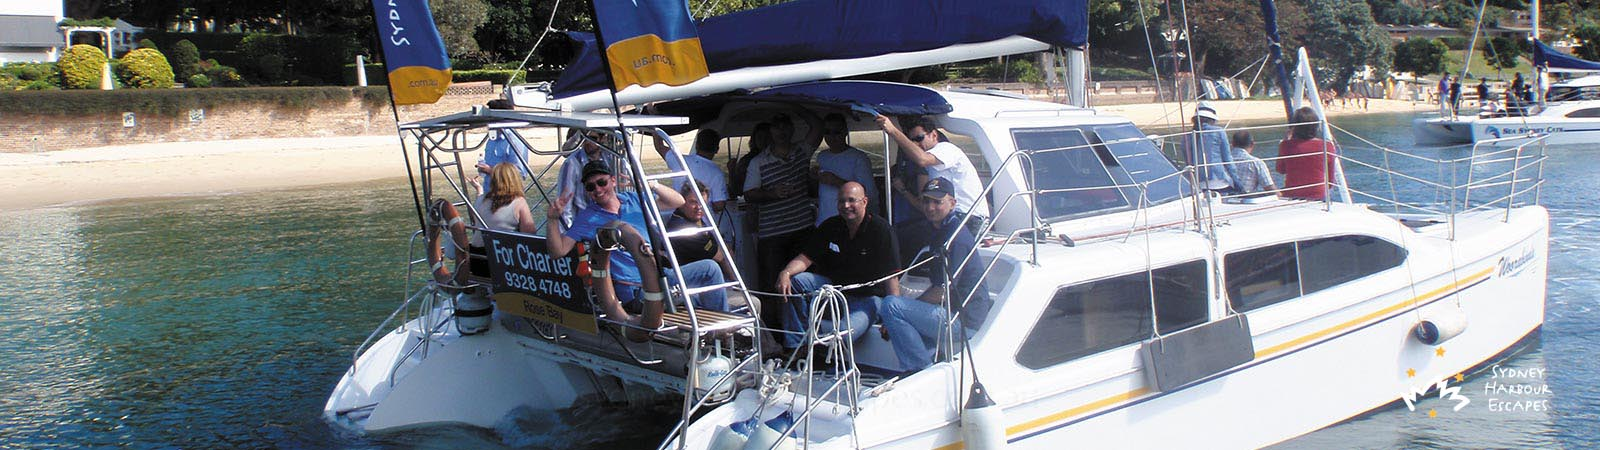 Corporate Team Building Activity Boat Charter